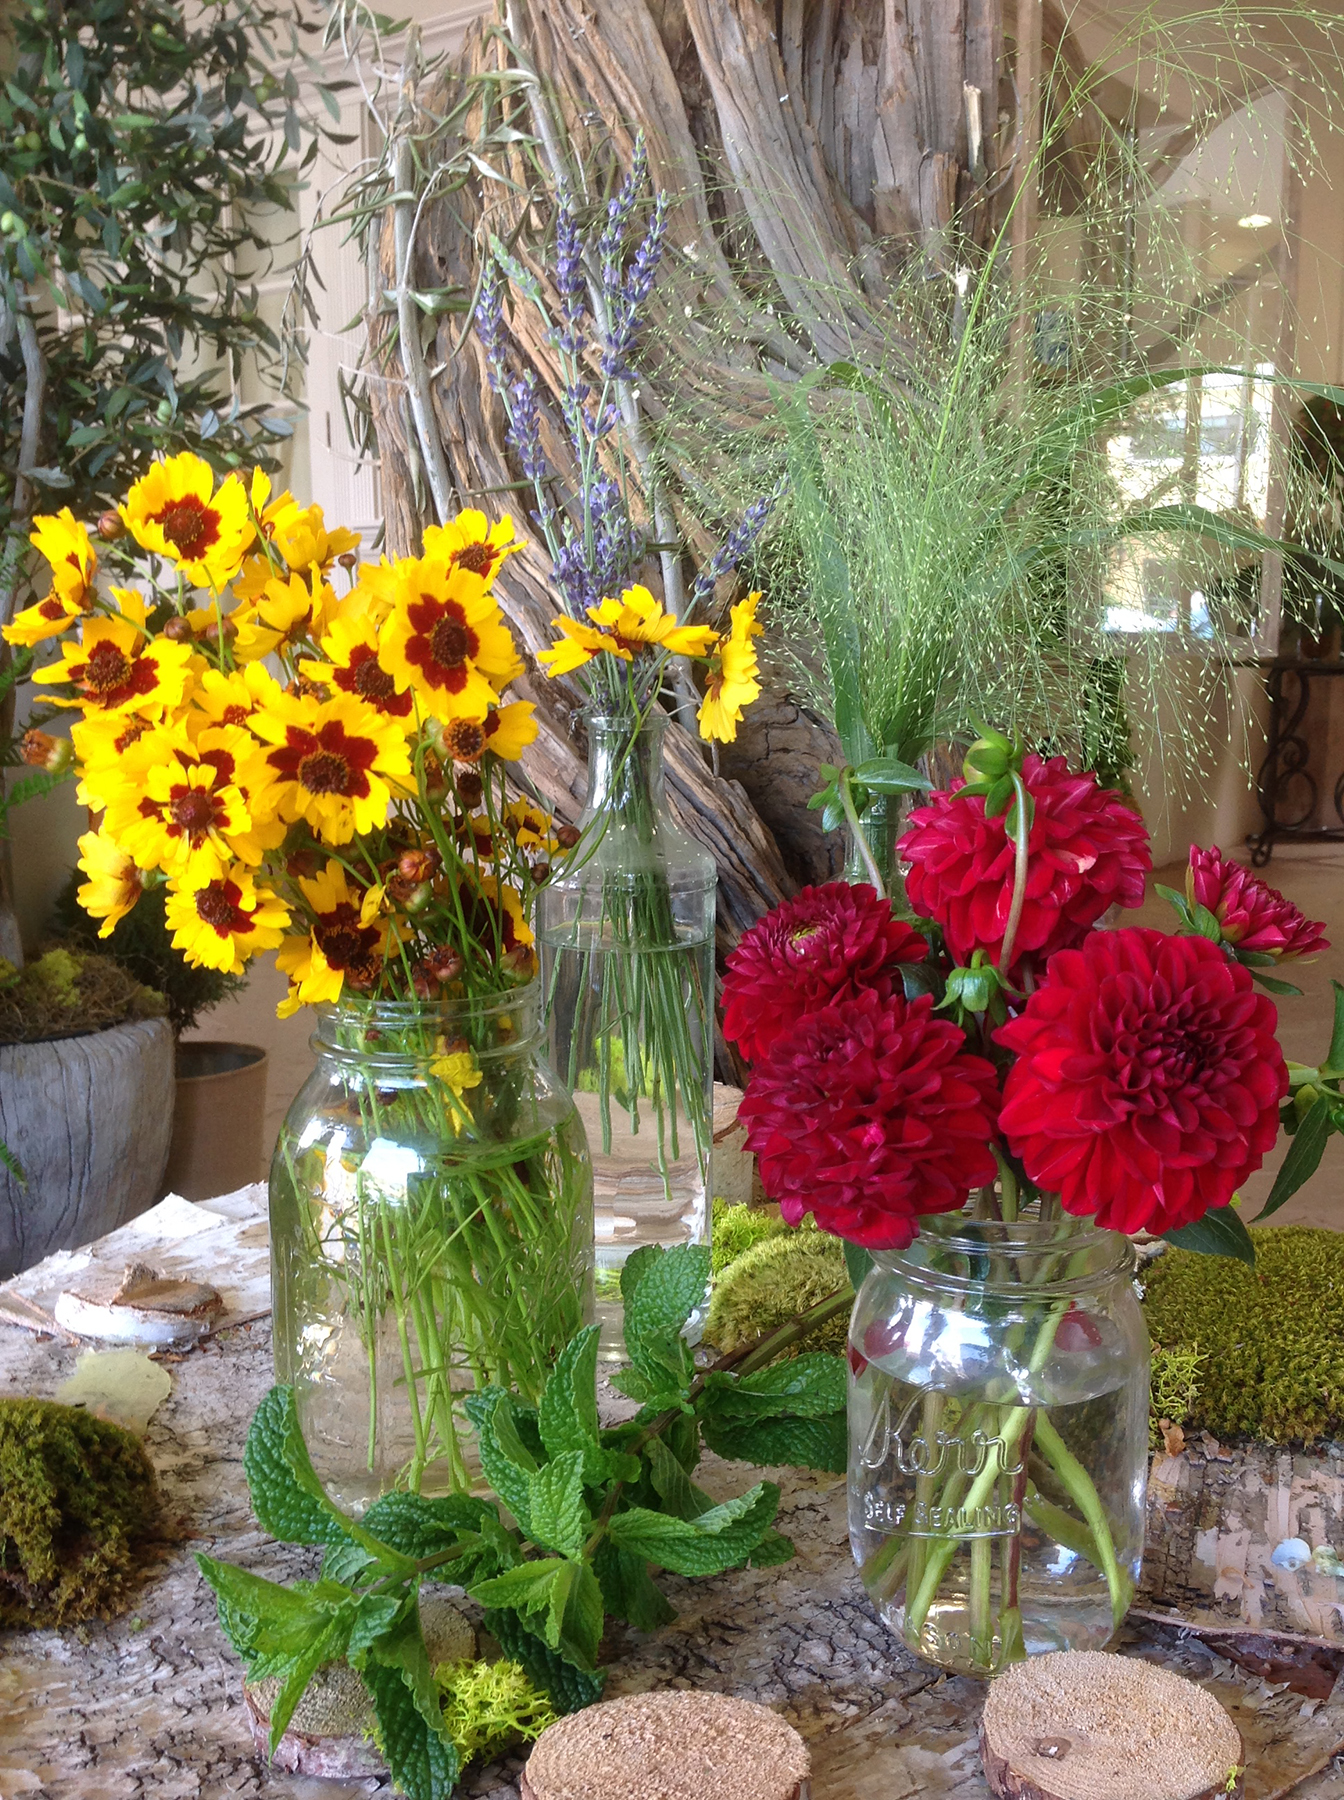 Mix of floral and herb arrangements